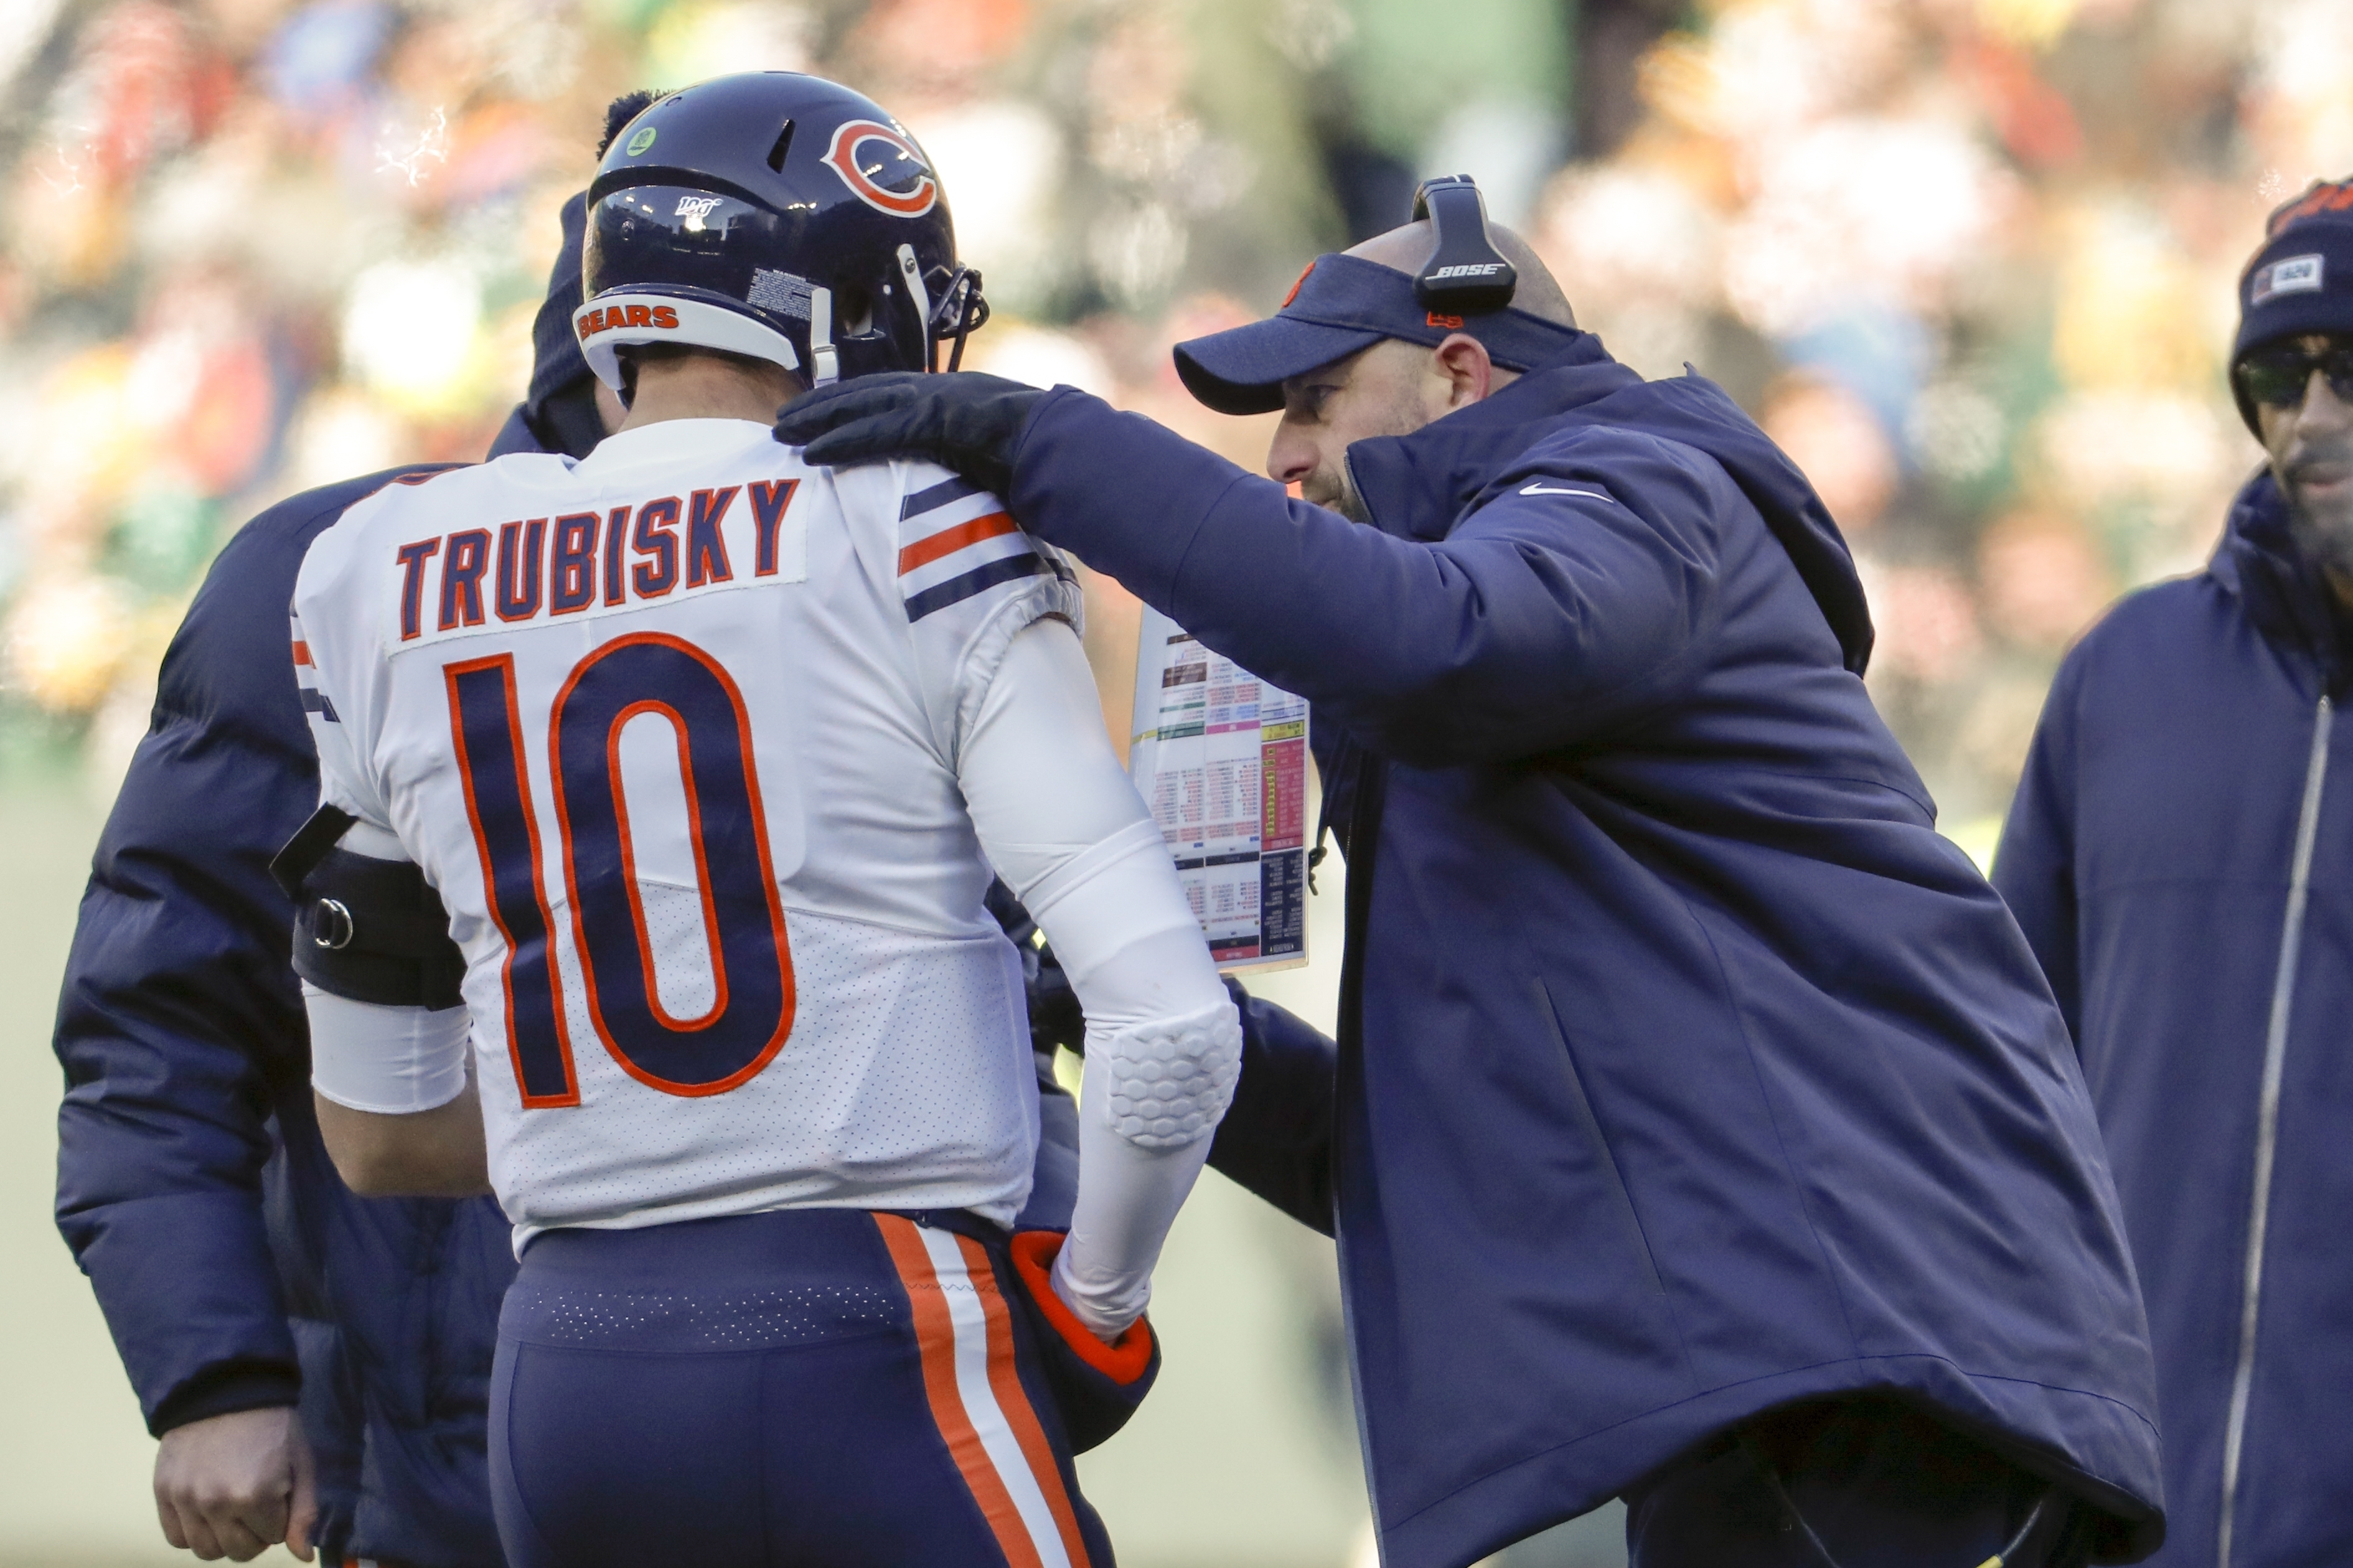 Bears coach Matt Nagy talks to QB Mitch Trubisky during the first half of Sunday's loss to the Packers in Green Bay.